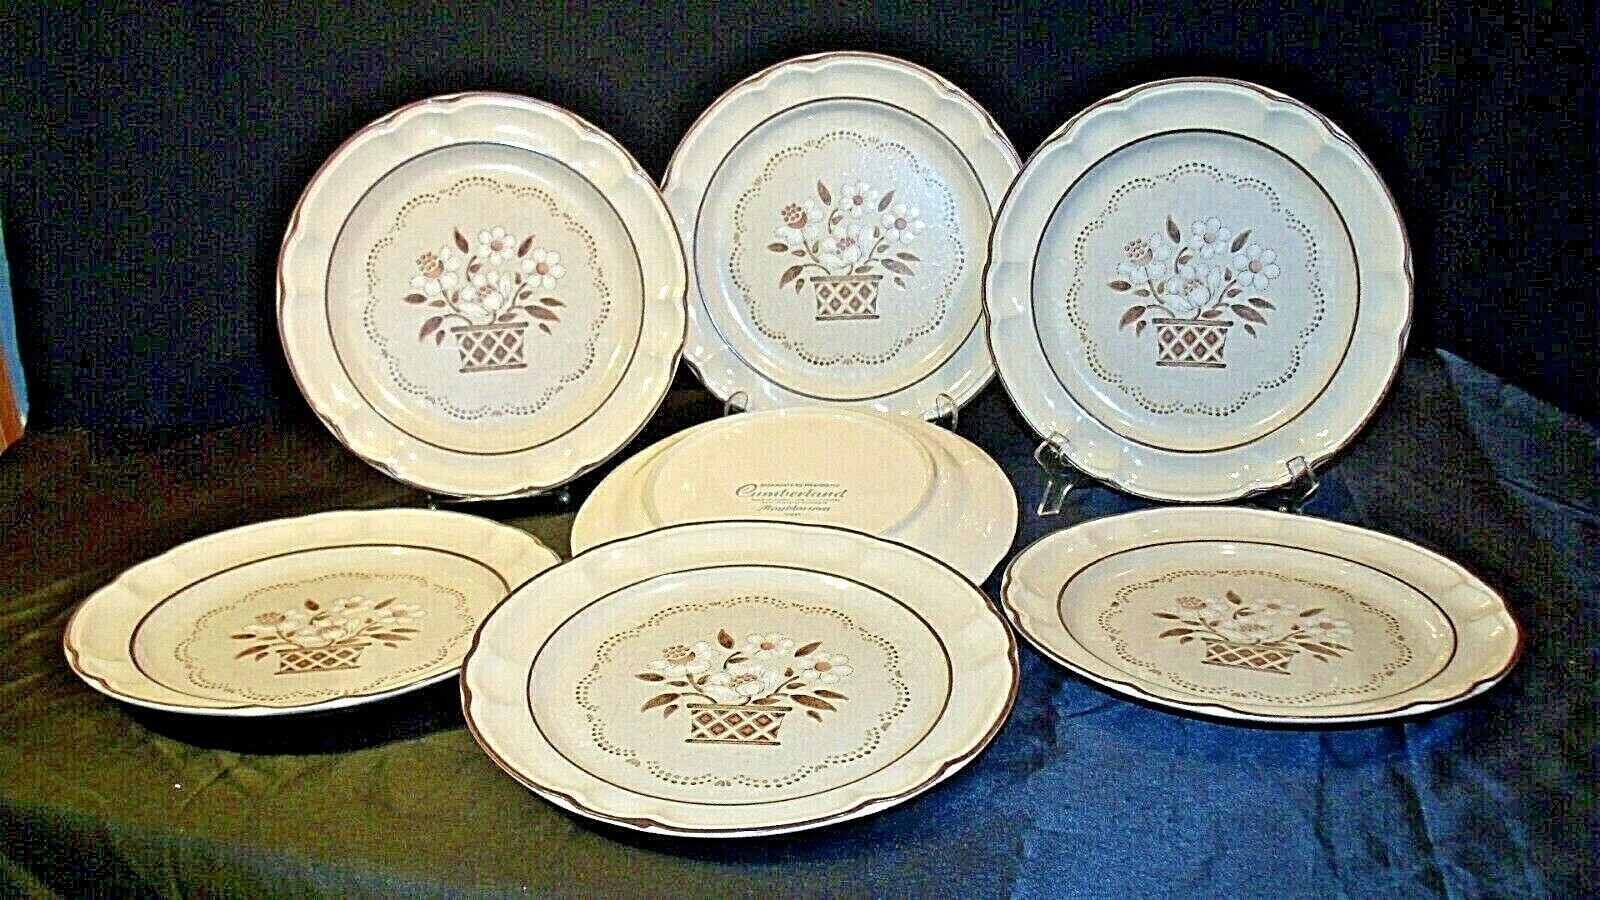 Stoneware Cumberland Mayblossom Dinner Plate by Hearthside Replacement pieces AA - $89.95